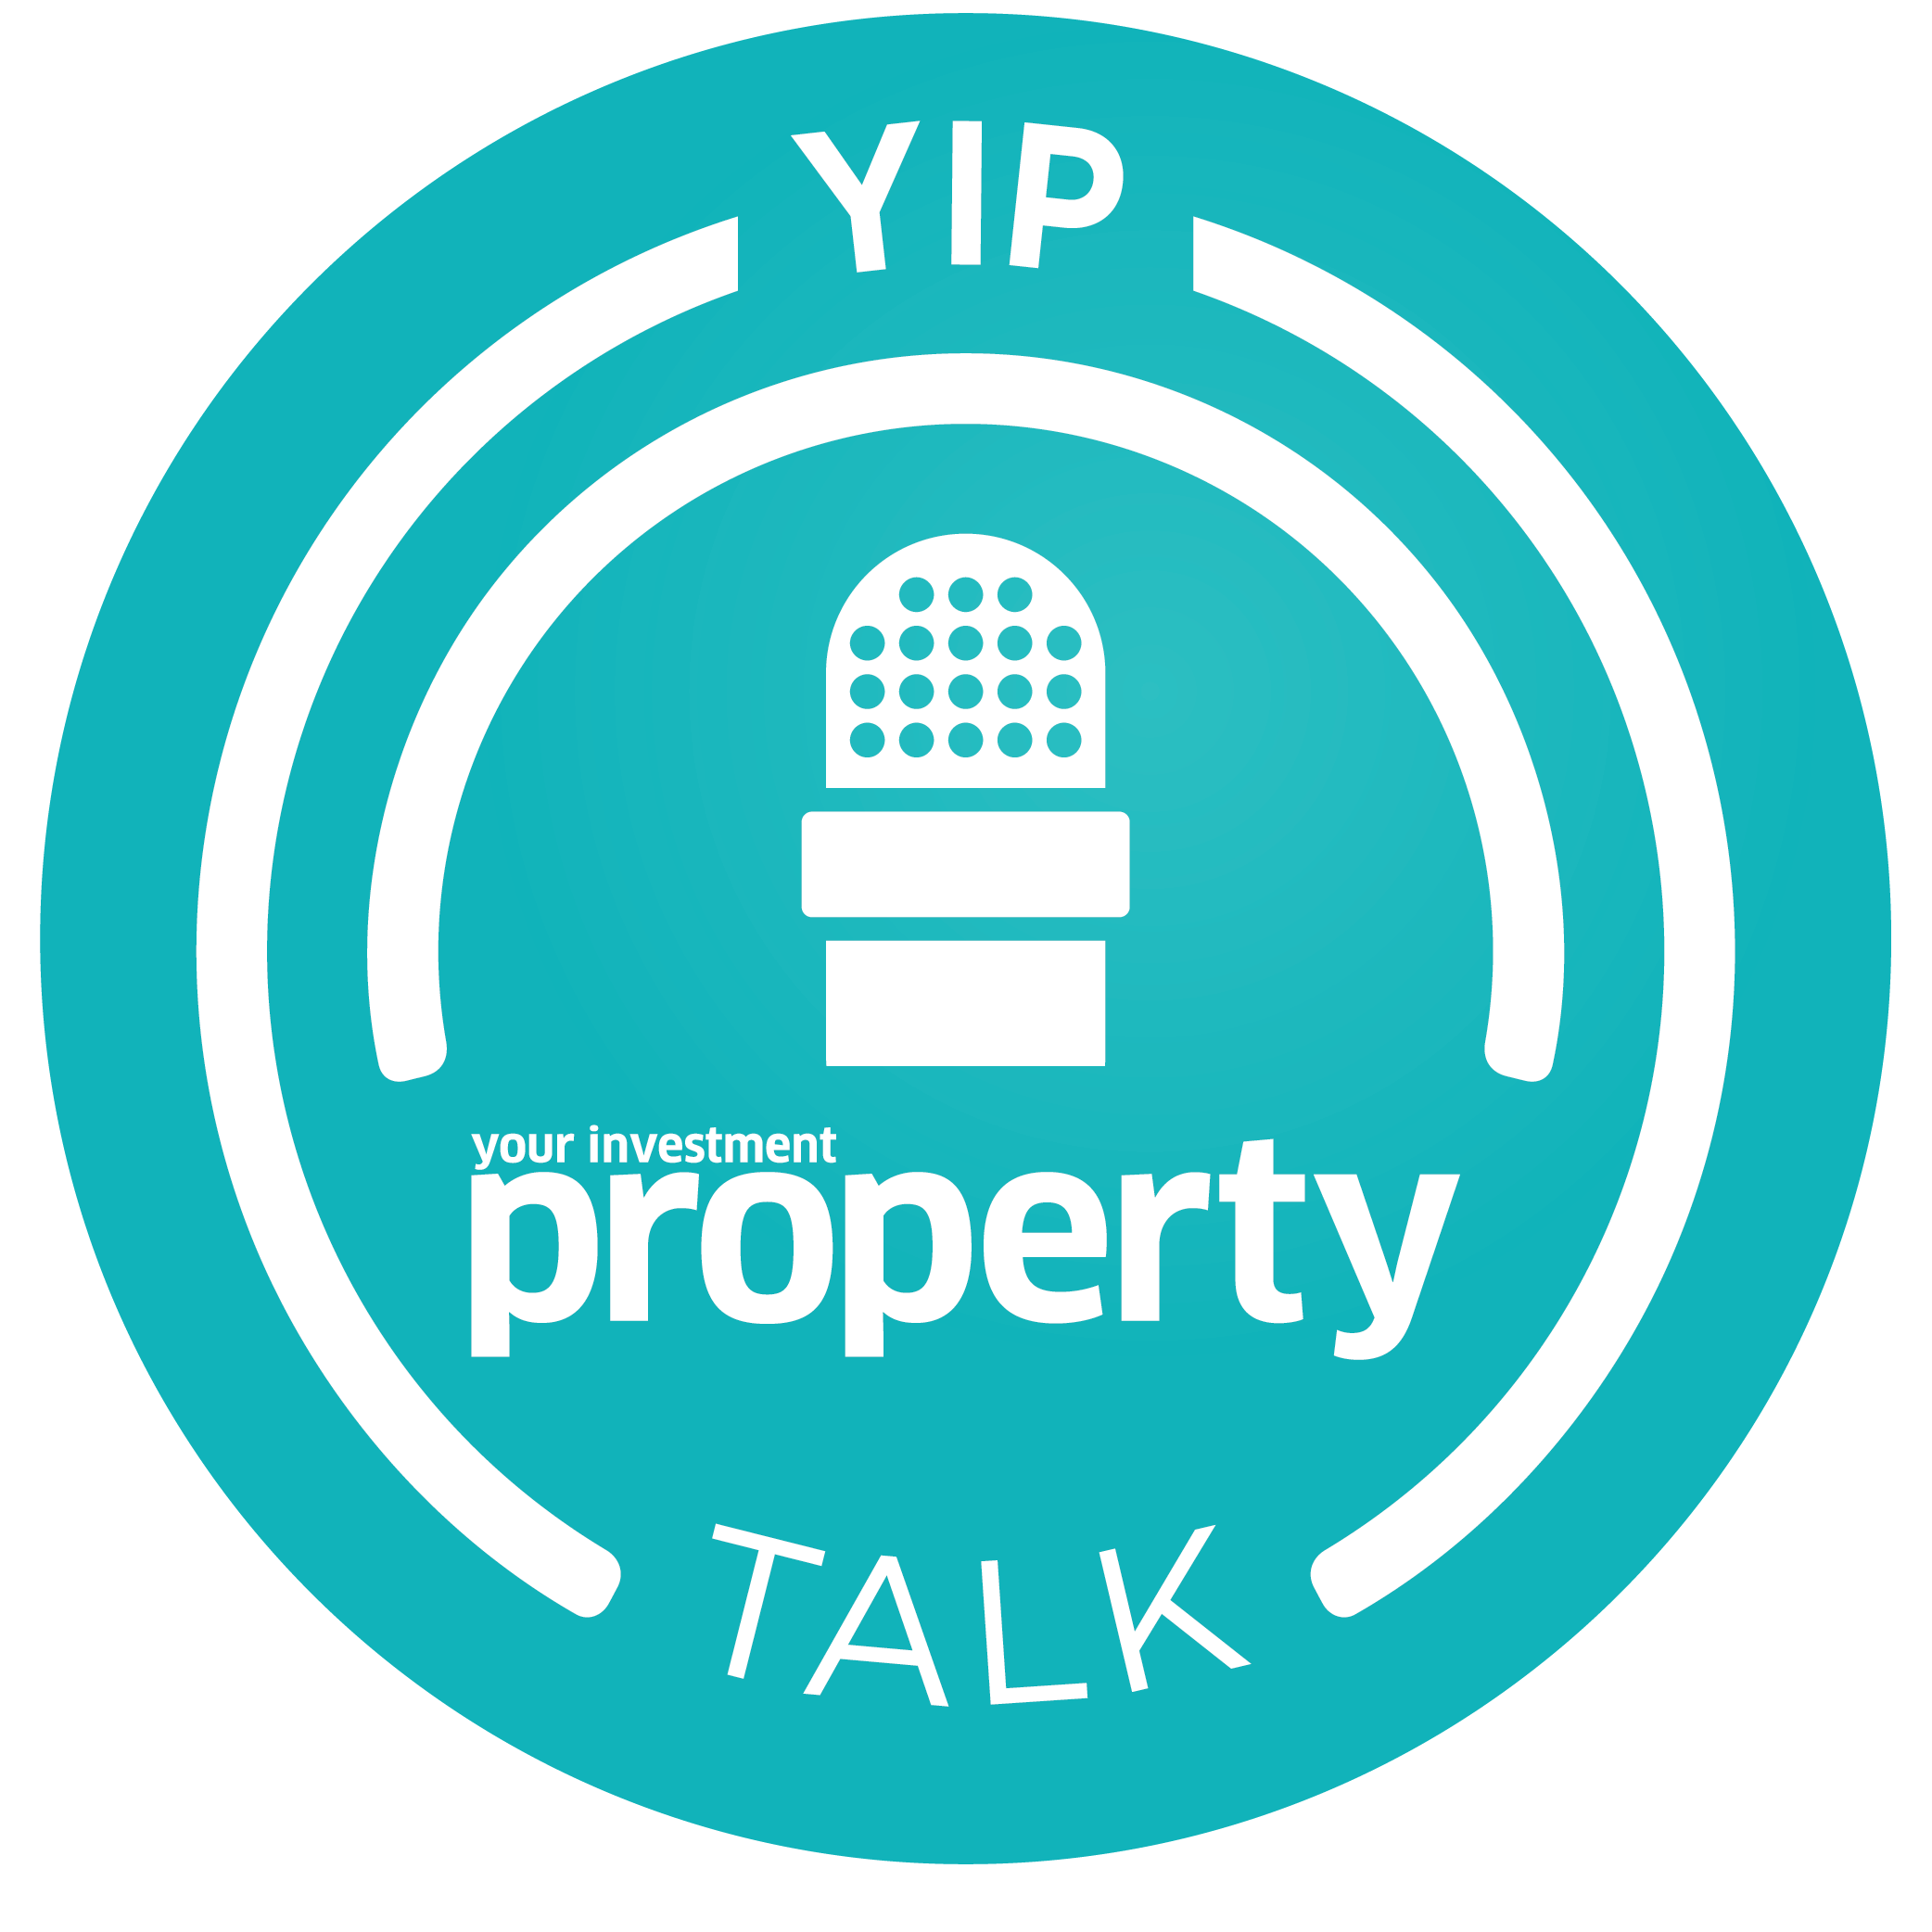 Episode 15 - February 2020 - The Property Bloke and profit-crunching mistakes to avoid